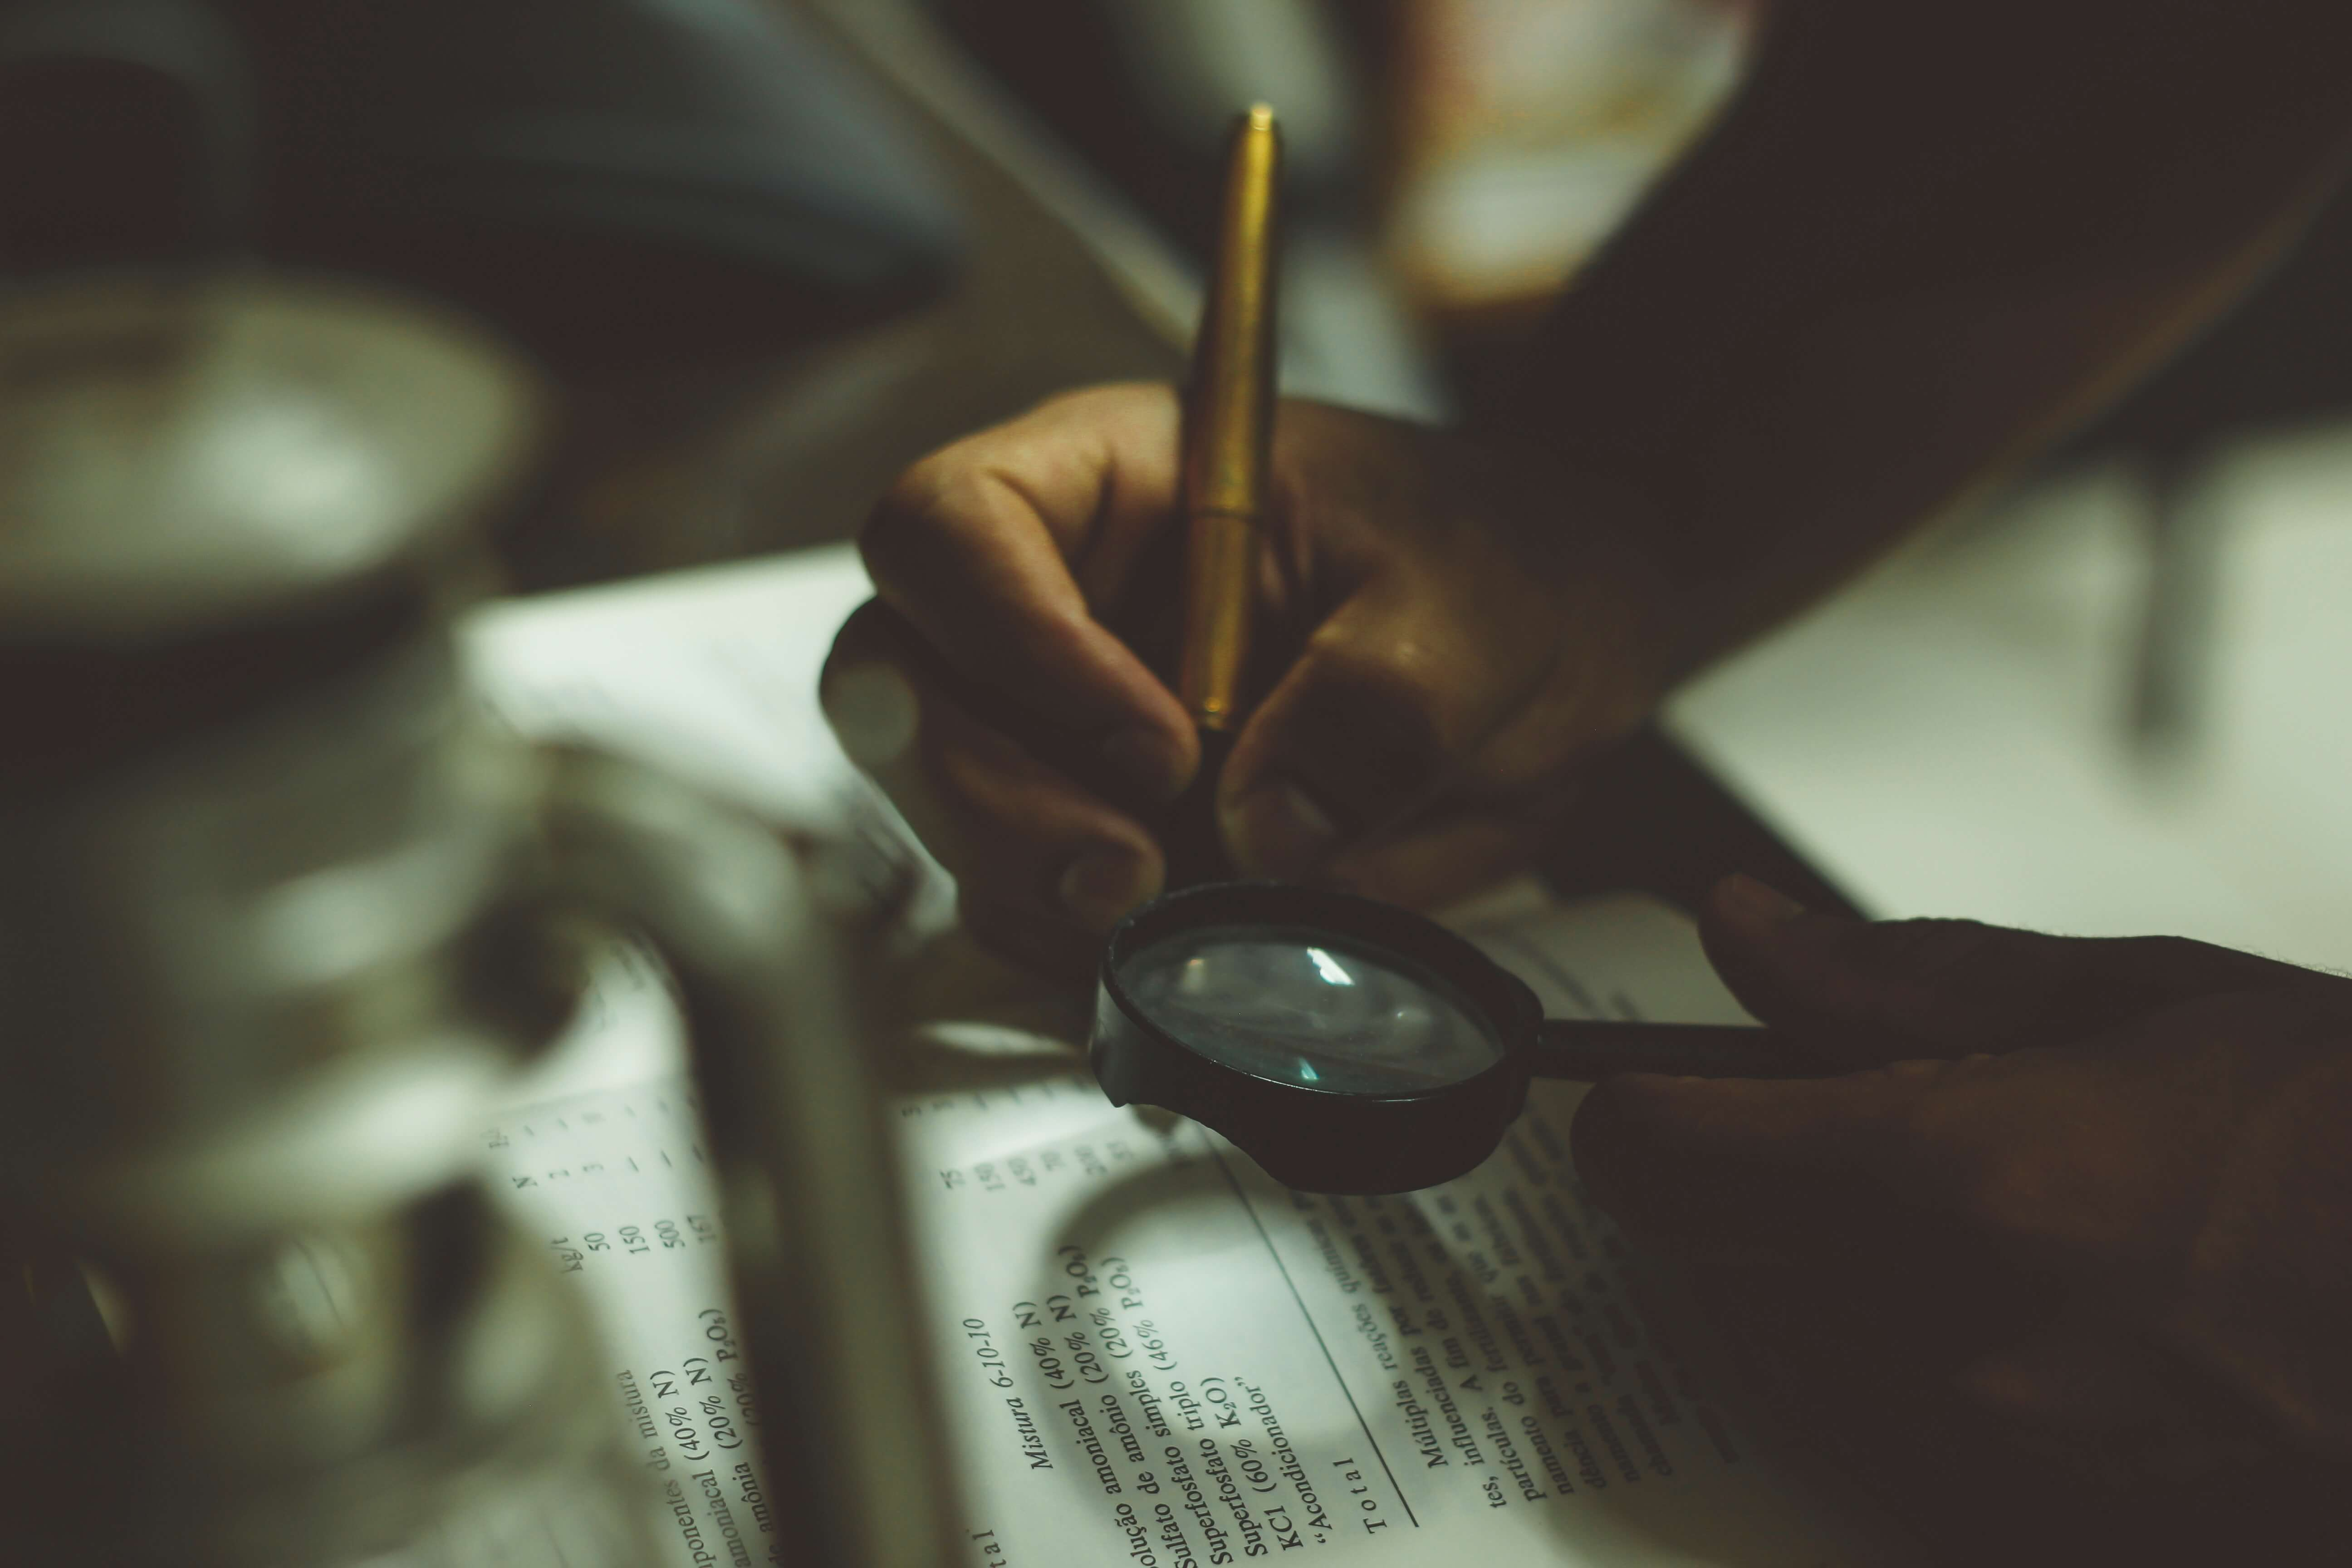 Person using a magnifying glass to read small print and a pen to make notes in a book.